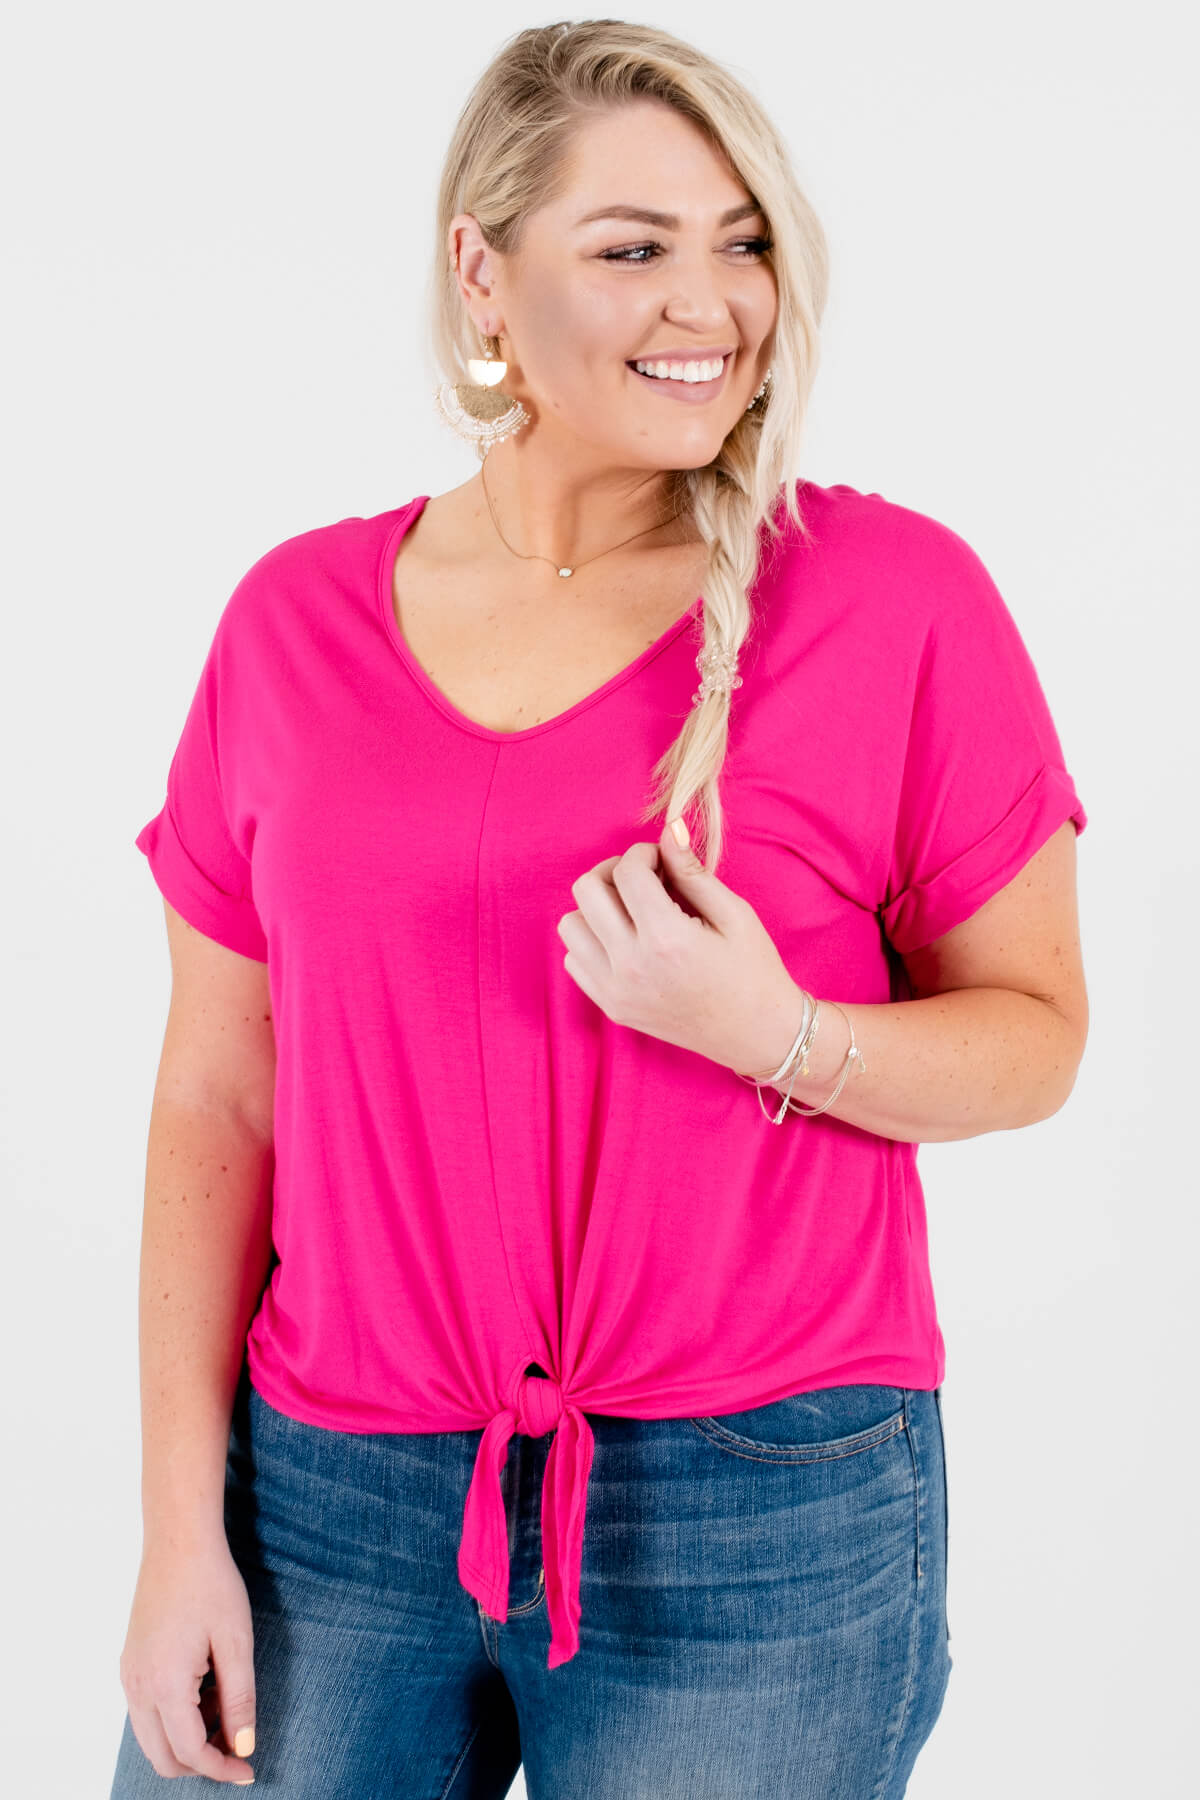 Hot Pink Plus Size Tie-Front Knot Tops Affordable Online Boutique